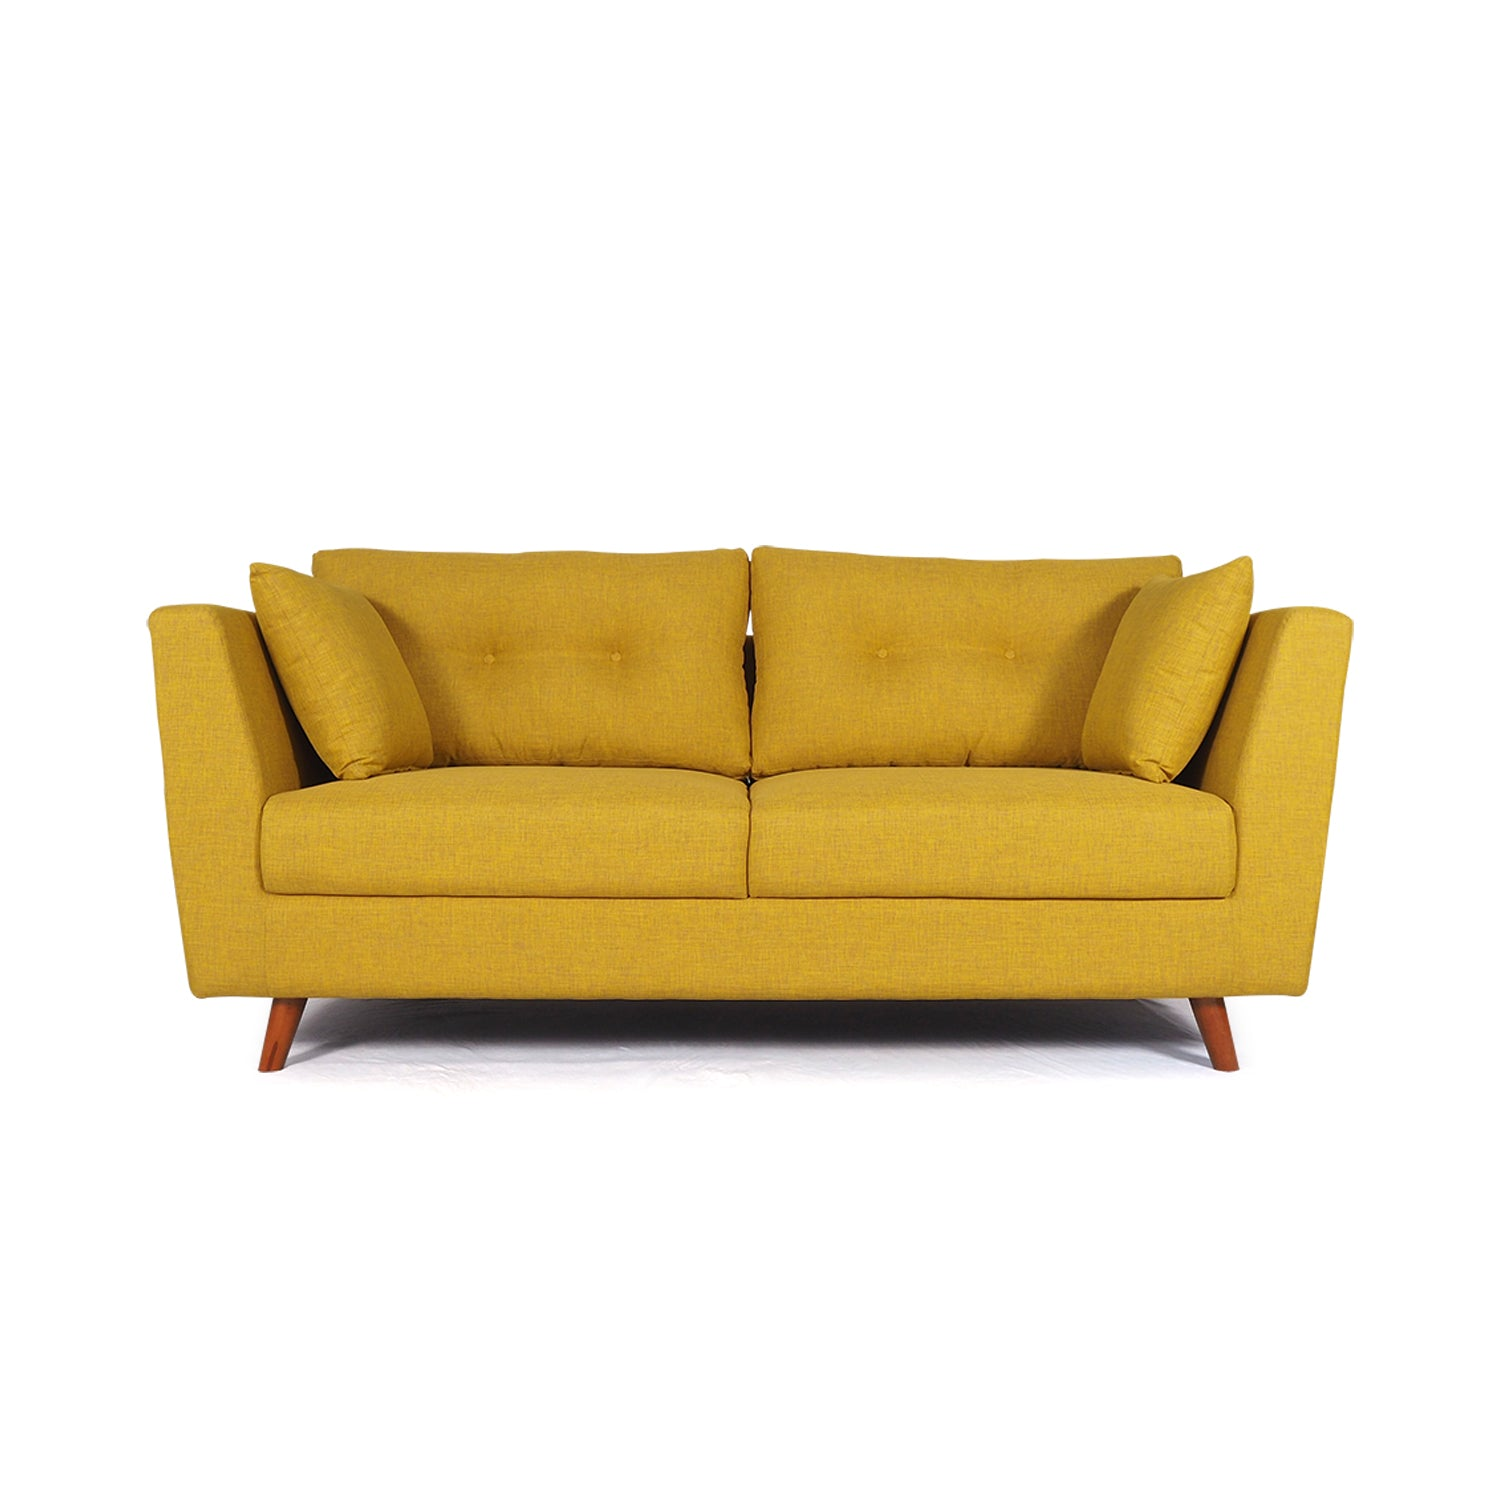 Zuri 2 Seater Yellow